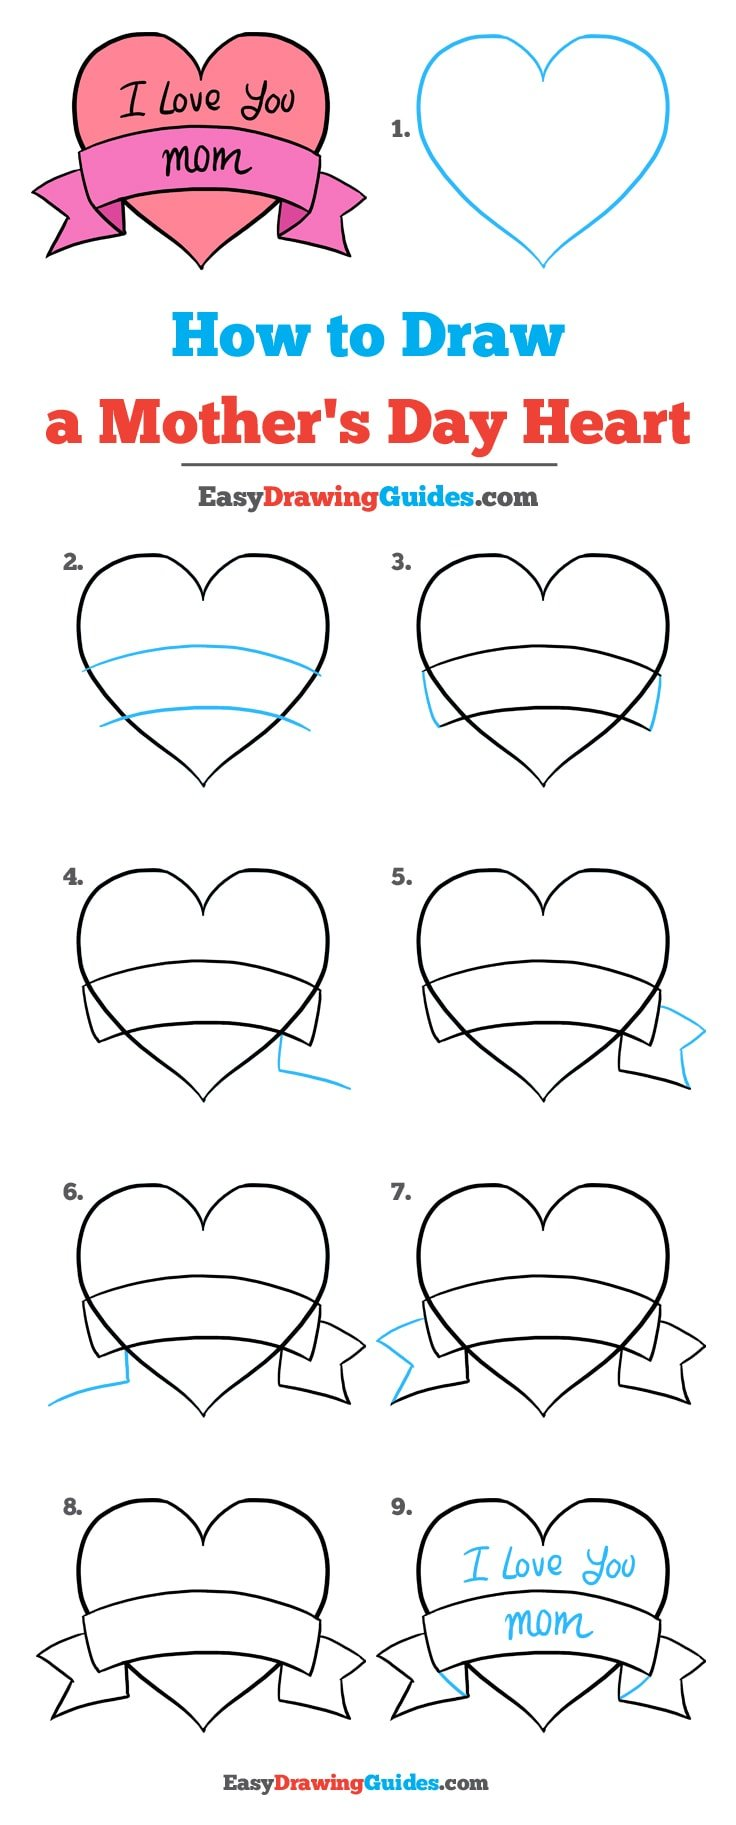 How to Draw Mother's Day Heart